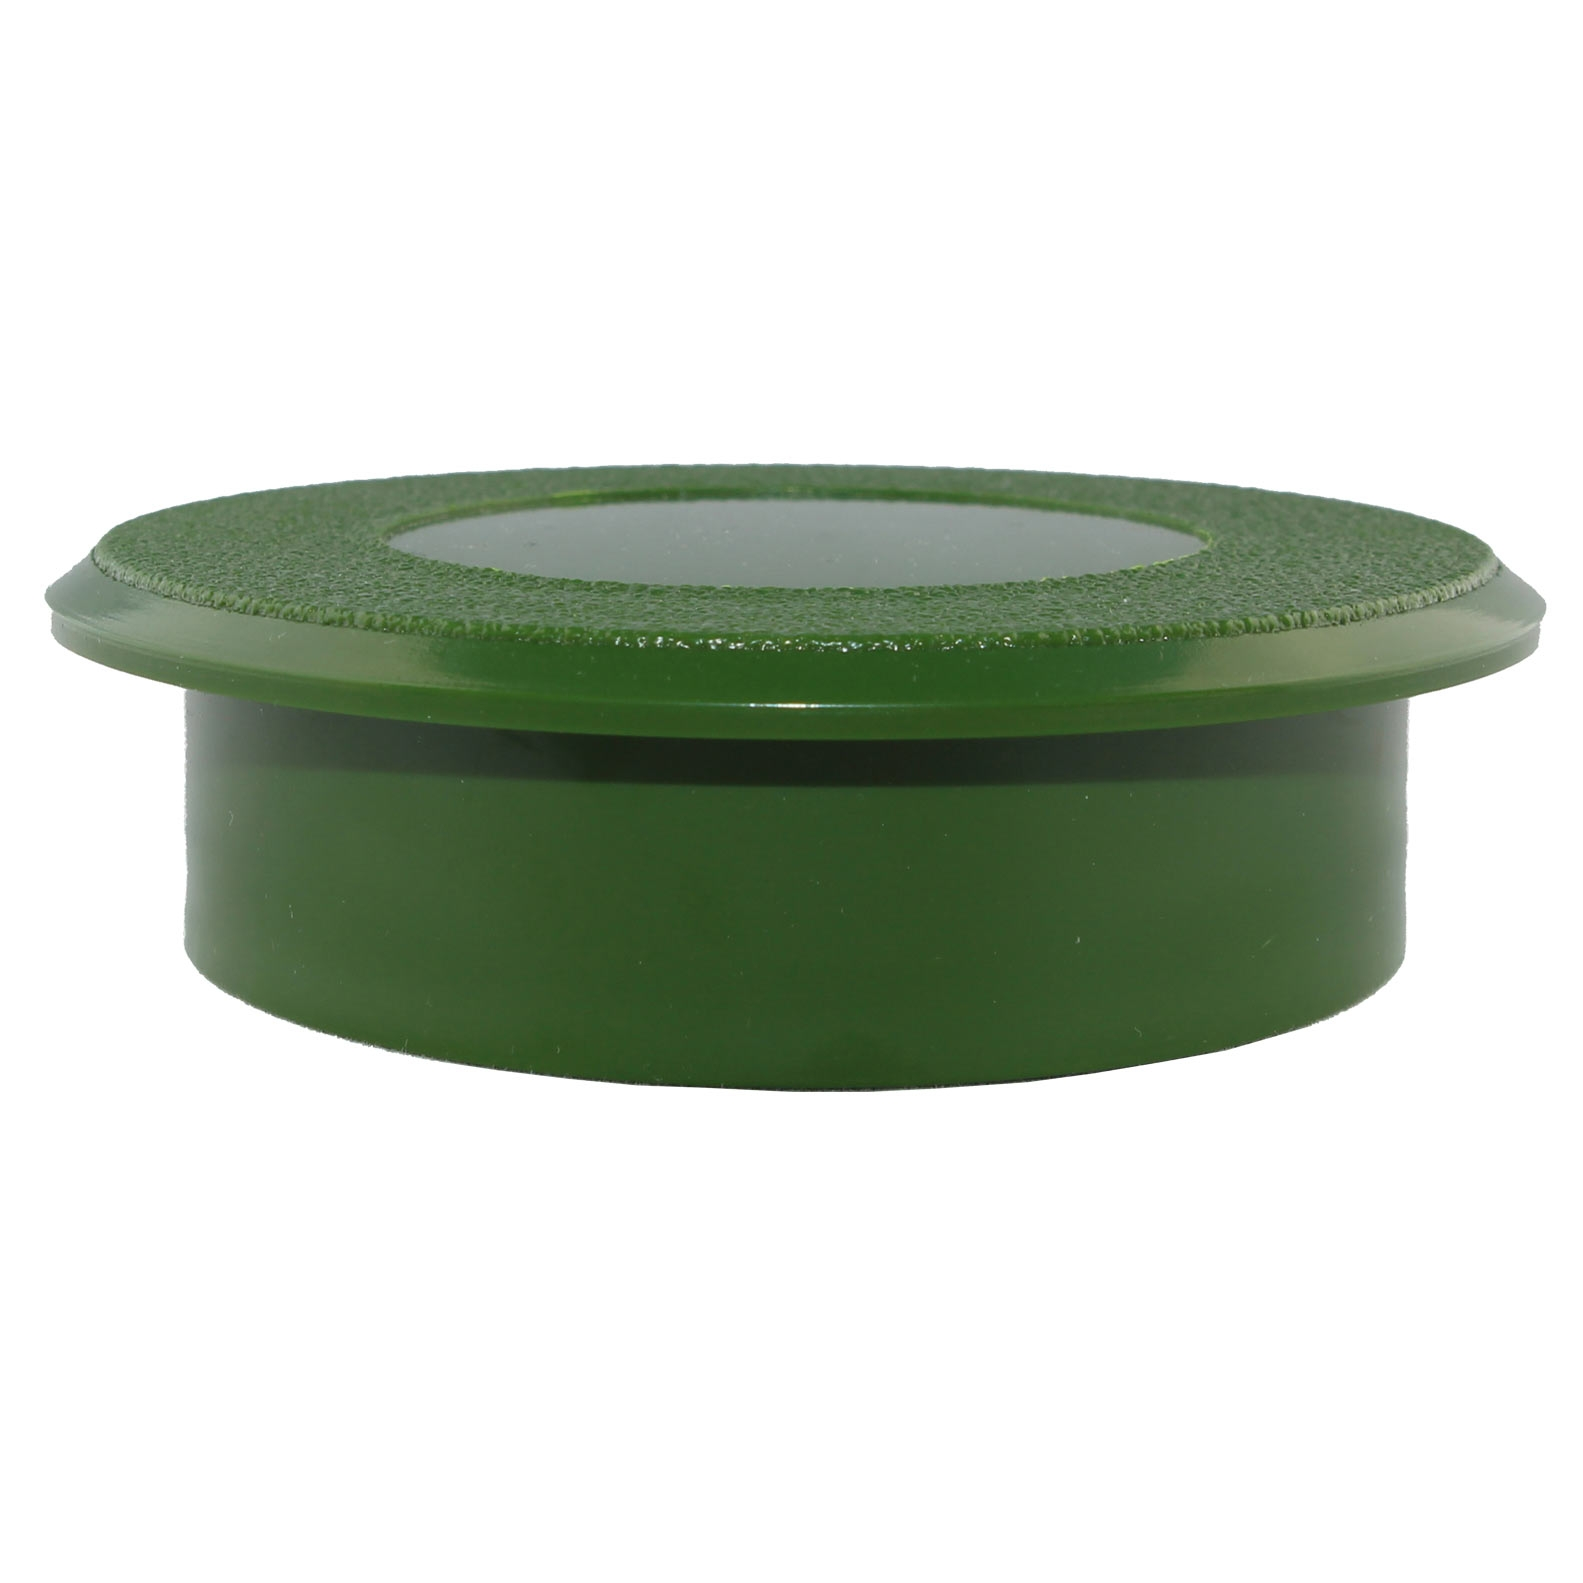 Green Golf Cup Cover Putting Greens